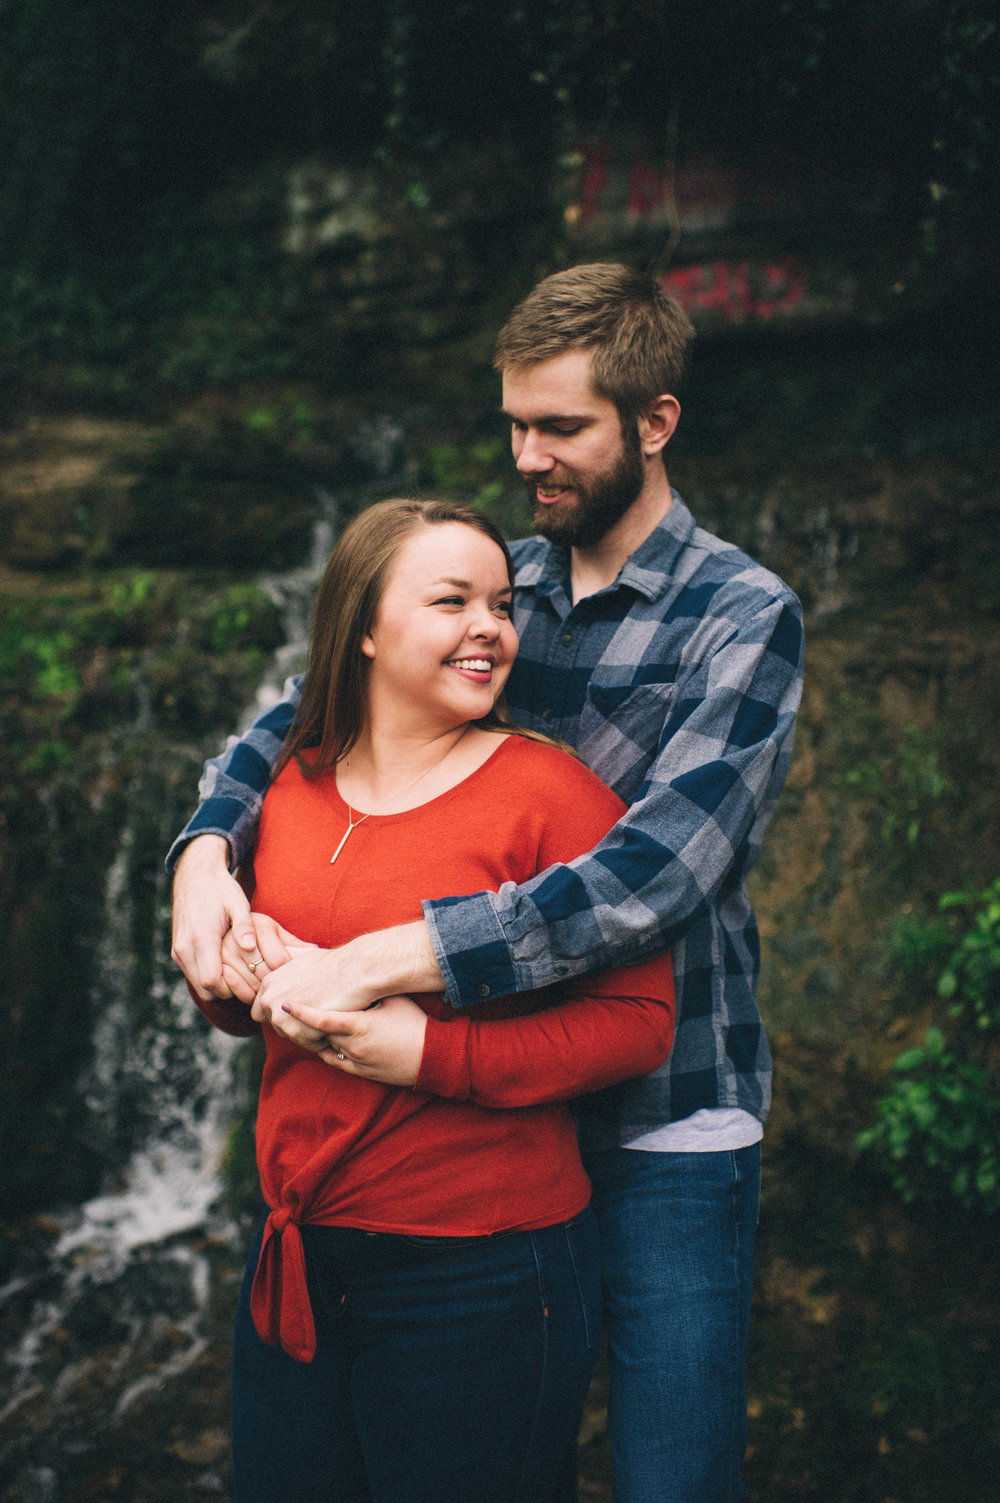 Maggie + Corey Adventurous Engagement Session- Sarah Katherine Davis Photography - Cherokee Park Hike - Louisville Kentucky - Hugging